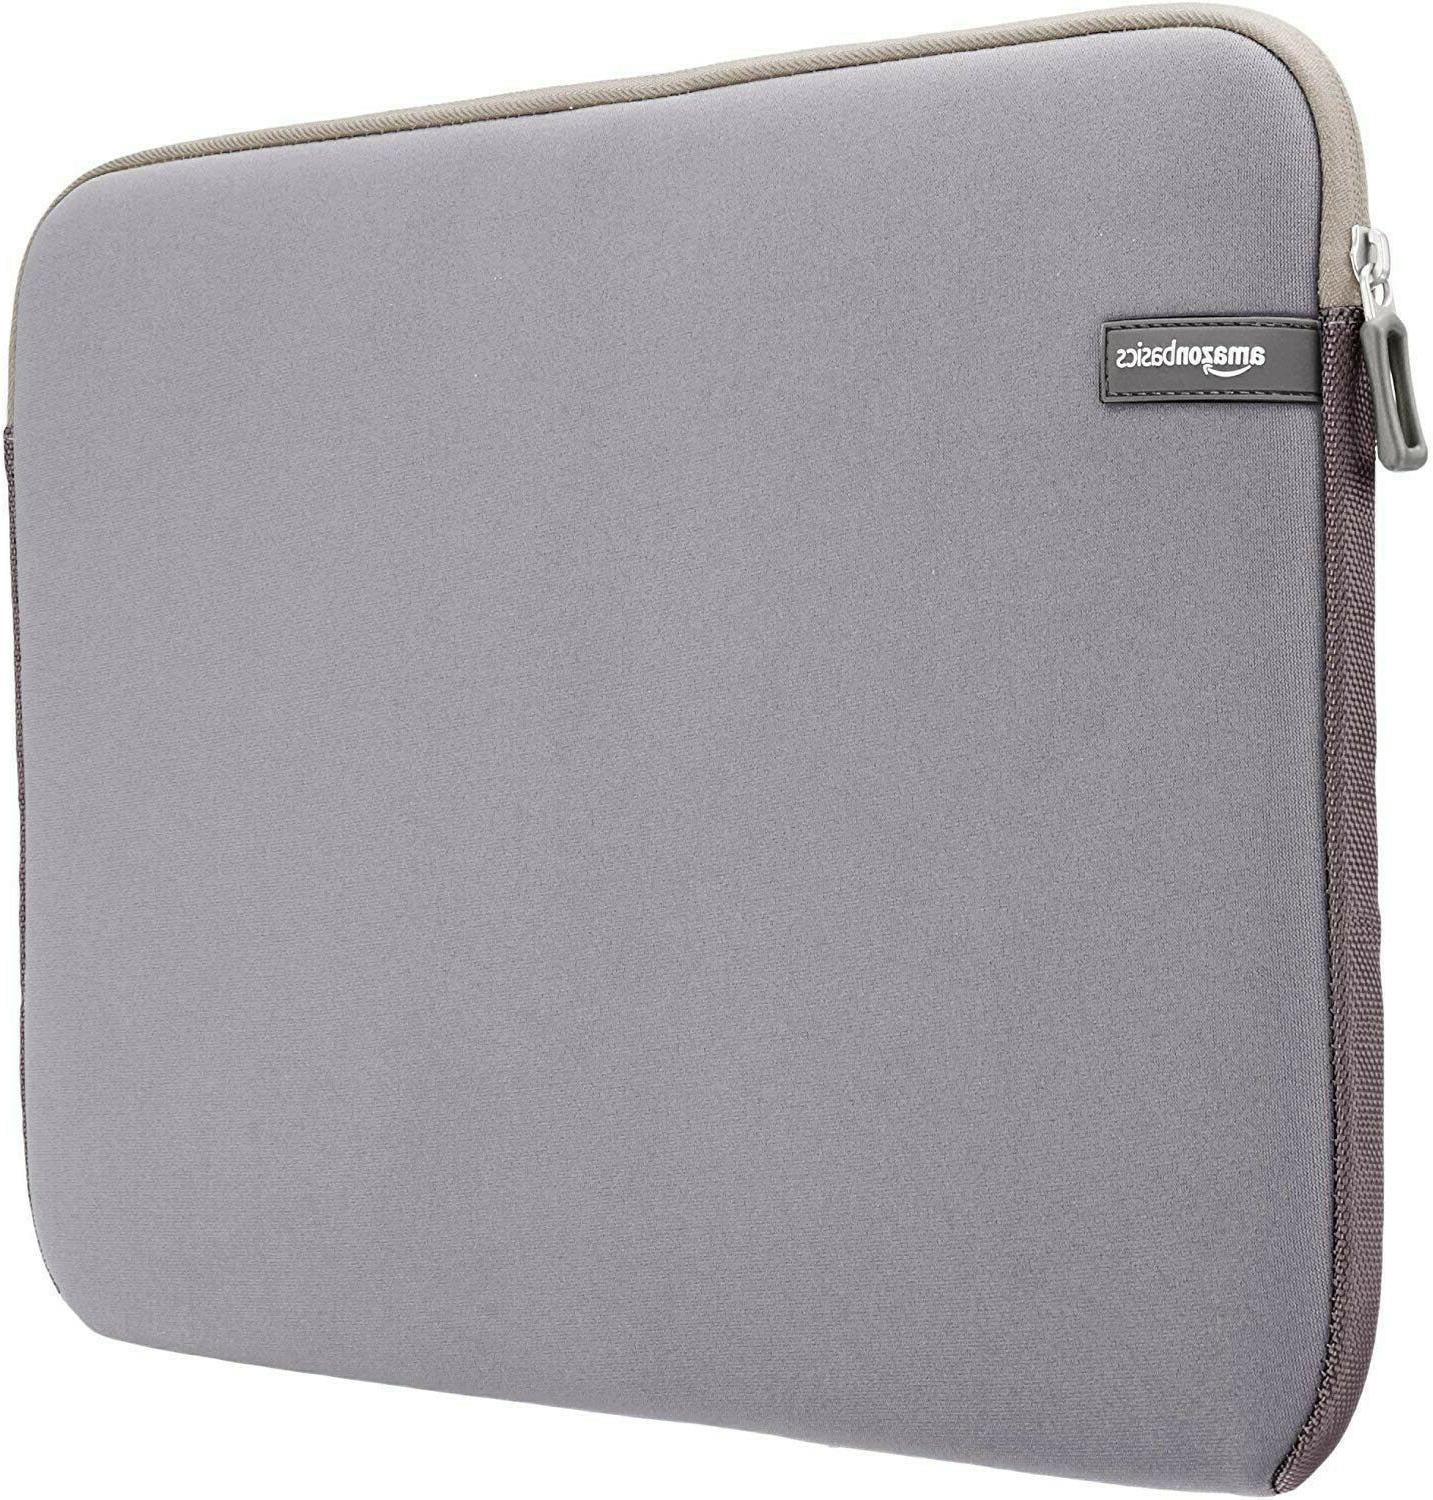 15 to 15 6 inch laptop sleeve